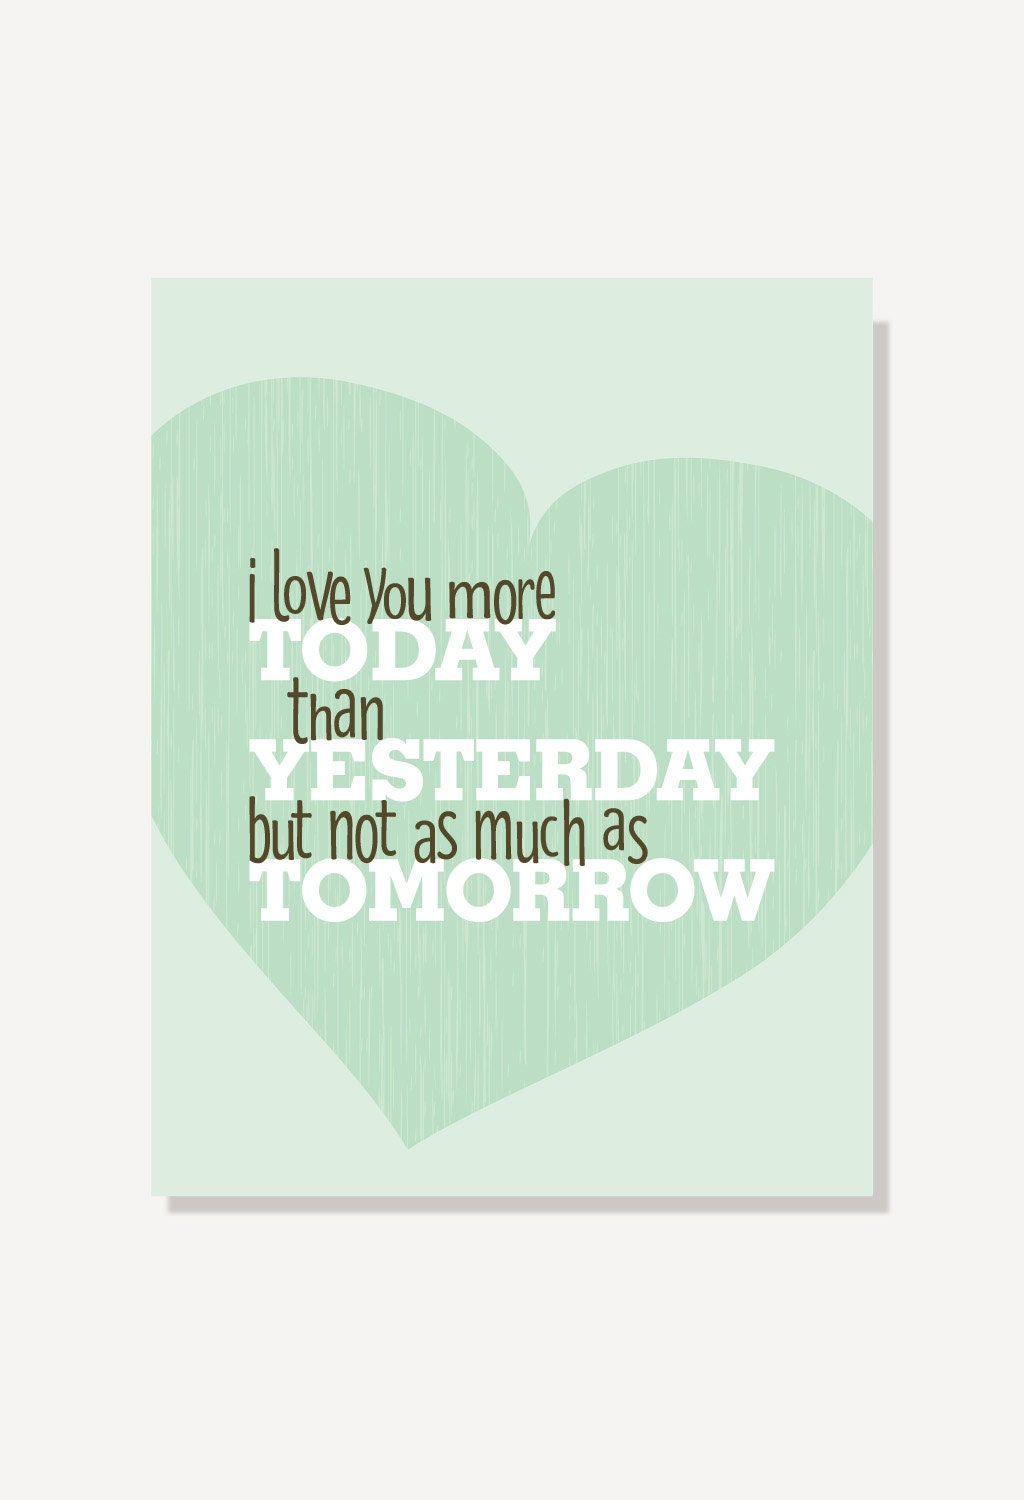 Love You More Quotes Love Quotes I Love You More Today Than Yesterday Rosemonde Gerard